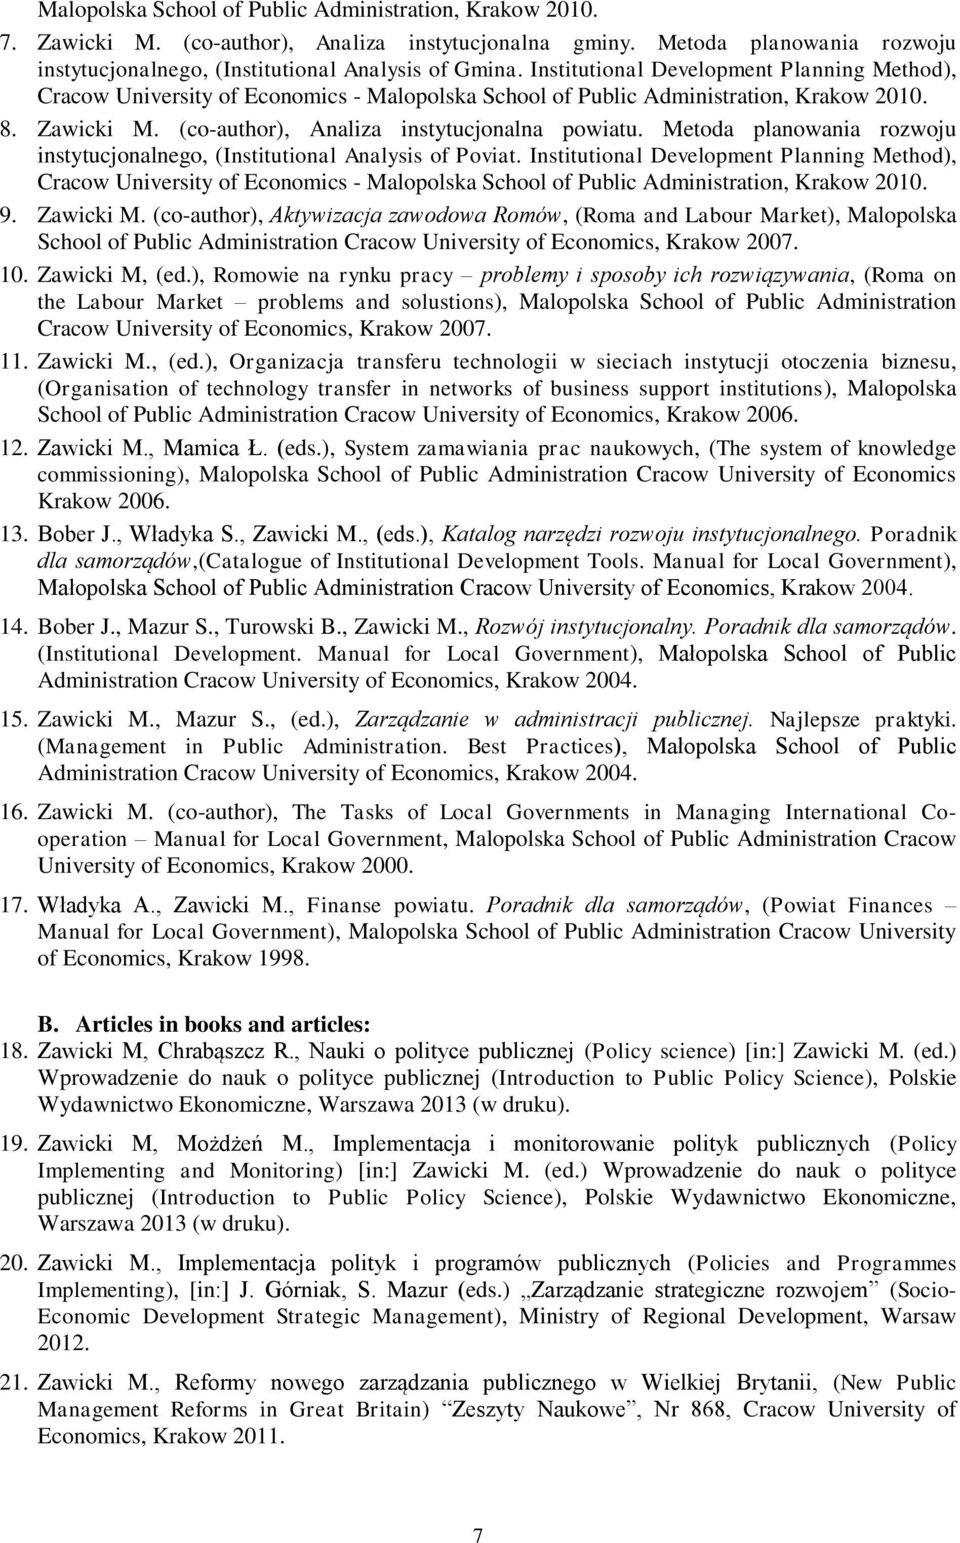 Metoda planowania rozwoju instytucjonalnego, (Institutional Analysis of Poviat. Institutional Development Planning Method), - Malopolska School of Public Administration, Krakow 2010. 9. Zawicki M.